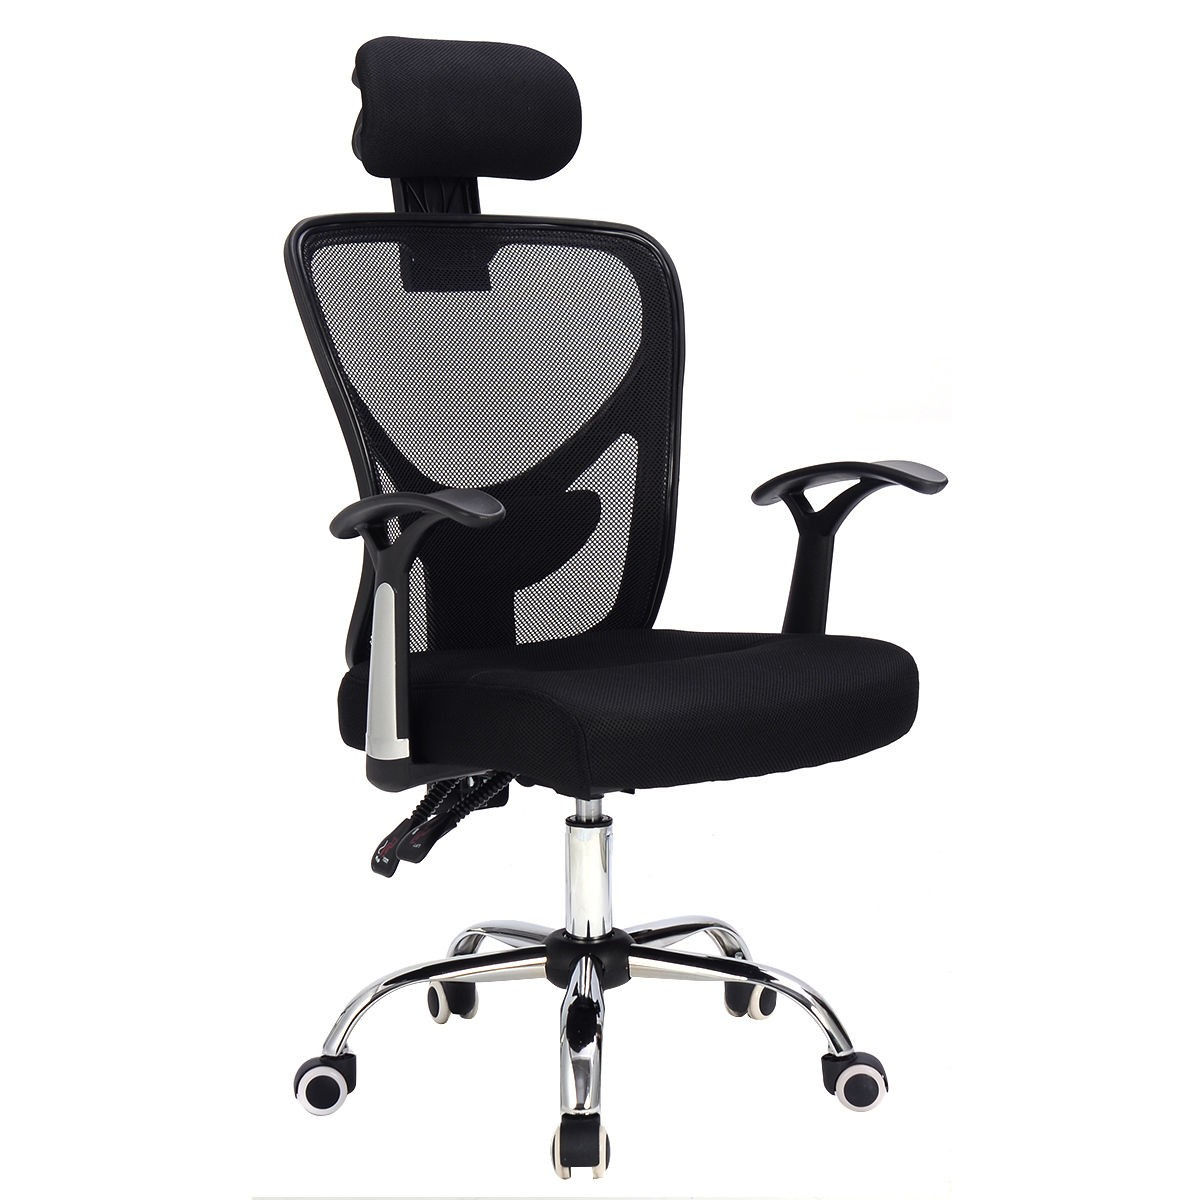 Mesh Ergonomic Office Chair Ergonomic Mesh High Back Office Chair Computer Desk Task